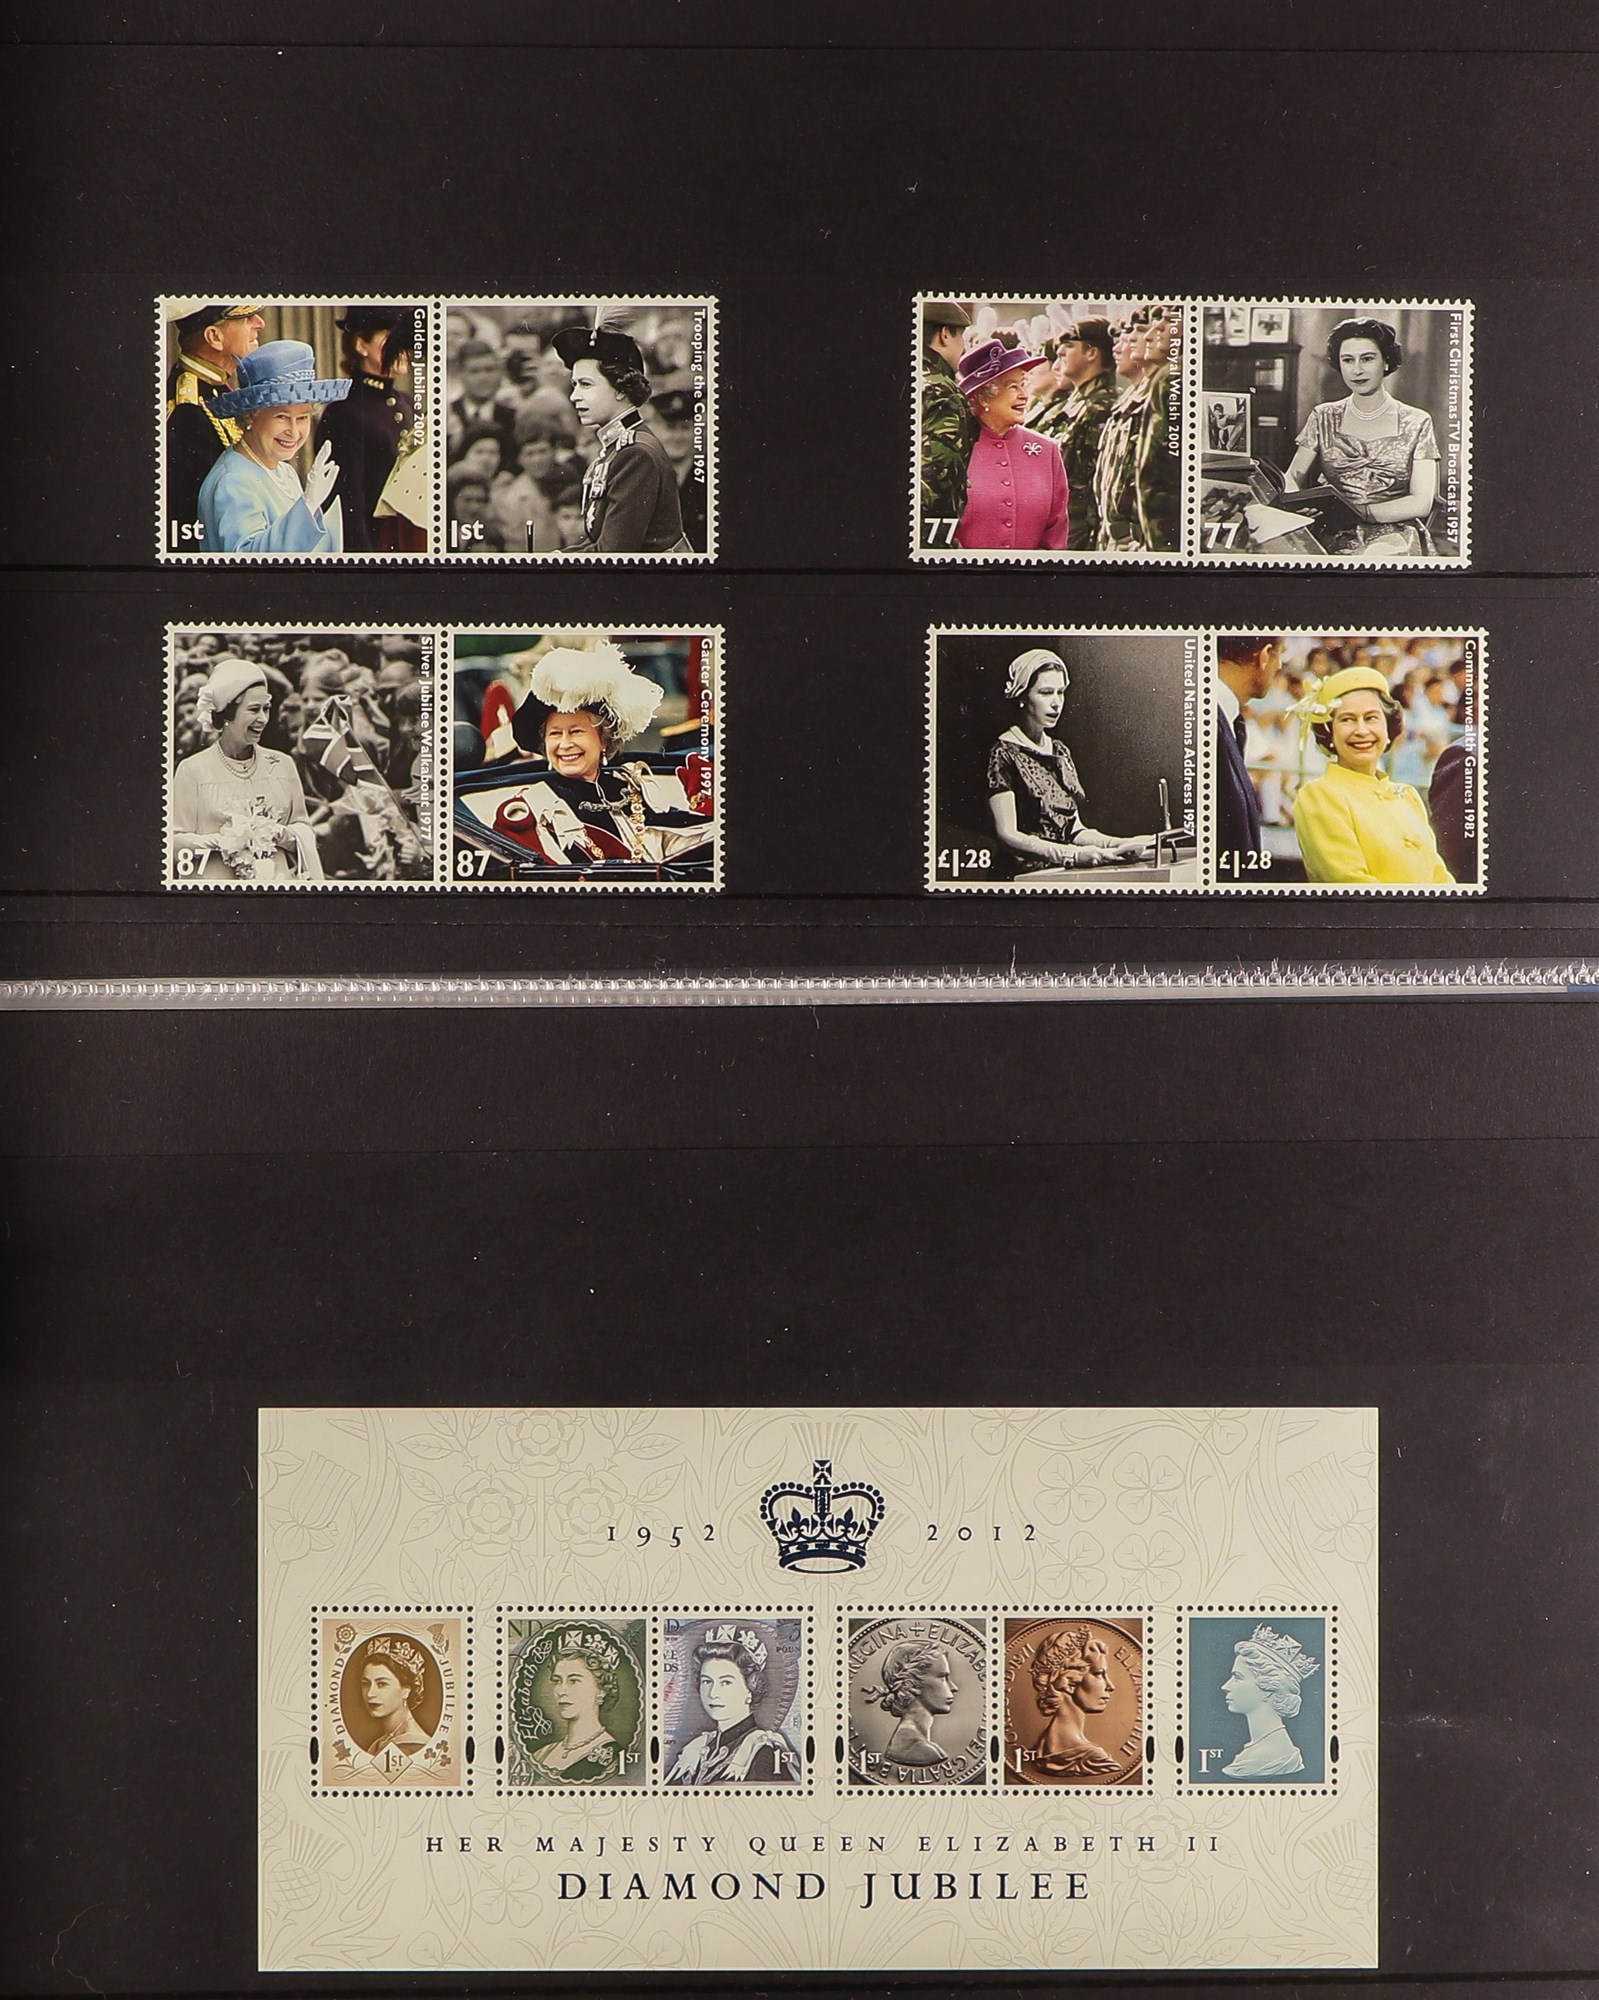 GB.ELIZABETH II 1993 - 2012 COMPREHENSIVE MINT COLLECTION which includes the commemorative stamp - Image 4 of 6